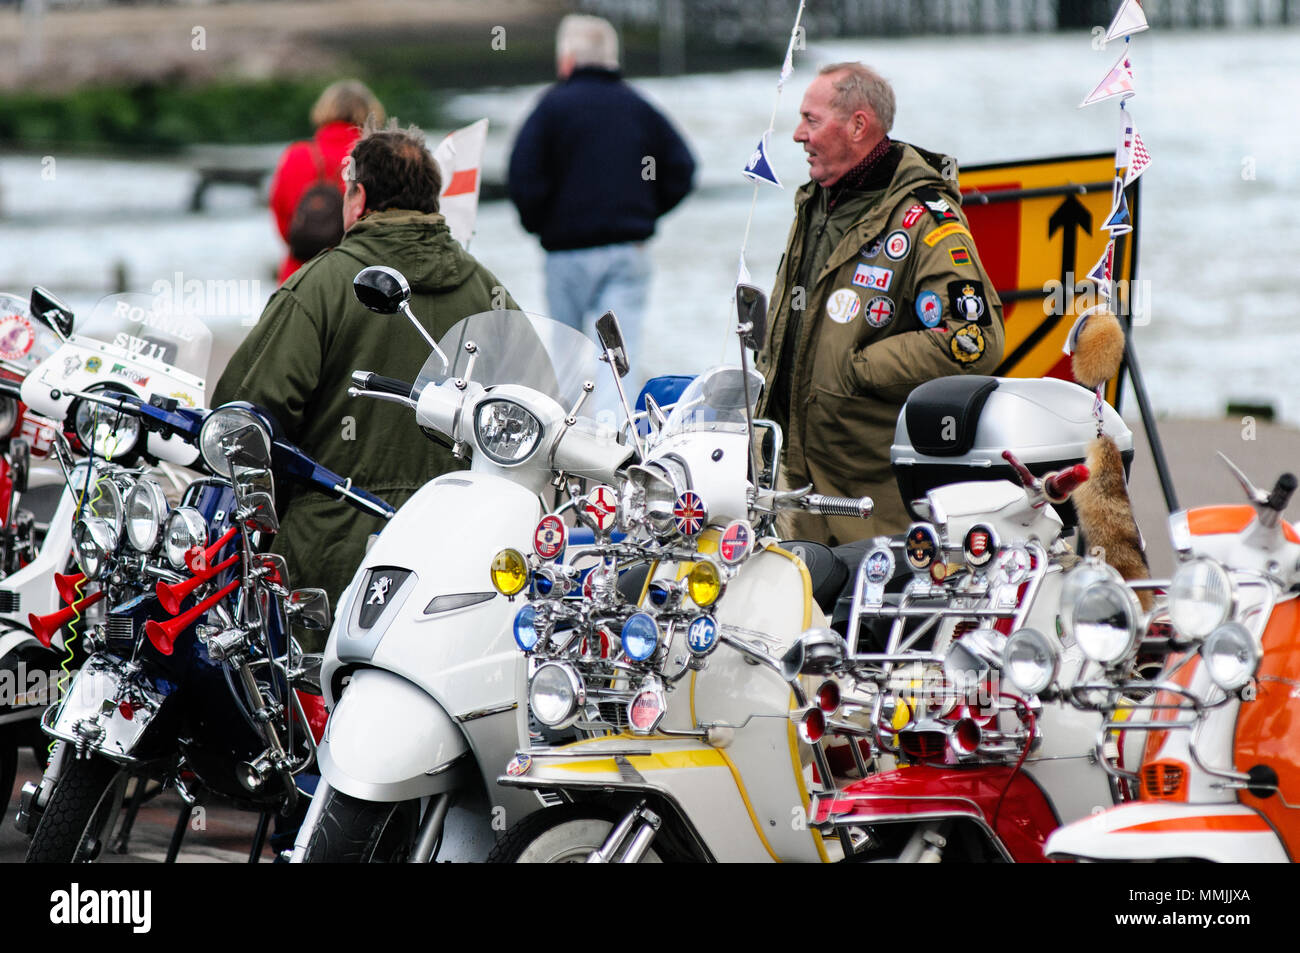 Southend, England - 17 April 2017. Scooter enthusiasts display their mod style scooters. - Stock Image